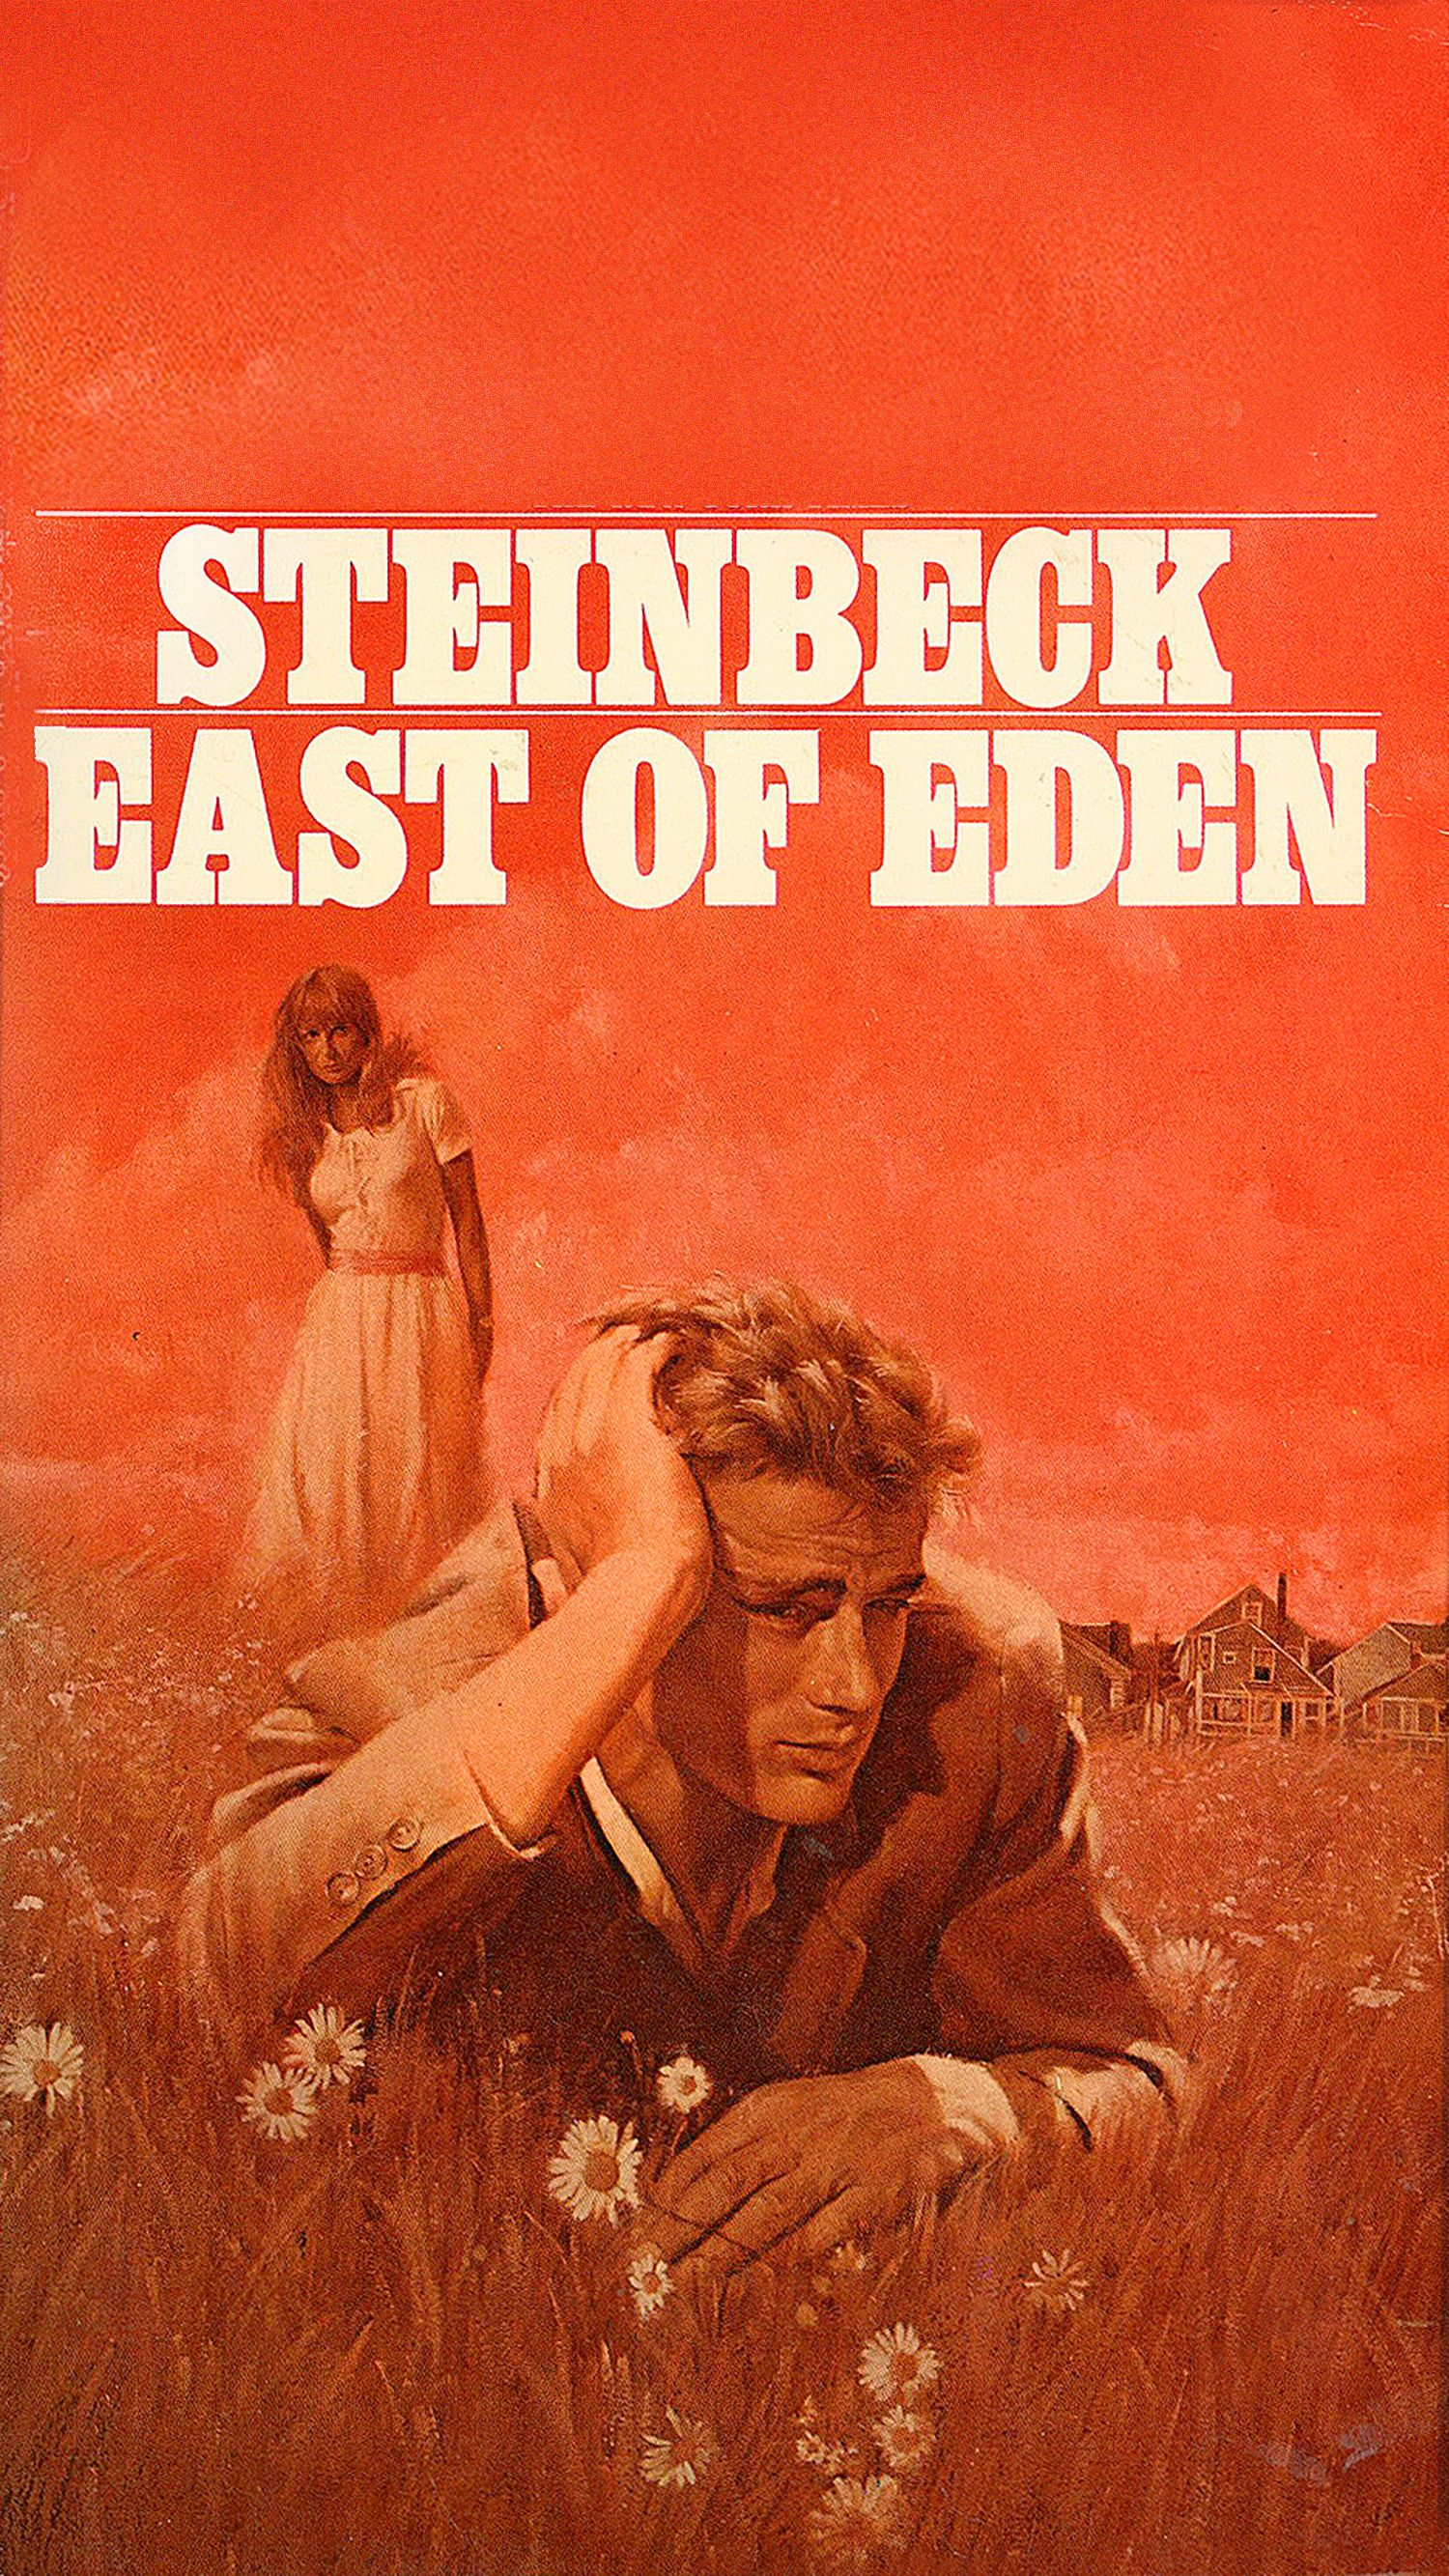 Jaws Book Cover Art ~ Cover art for east of eden art by roger kastel who is famous for